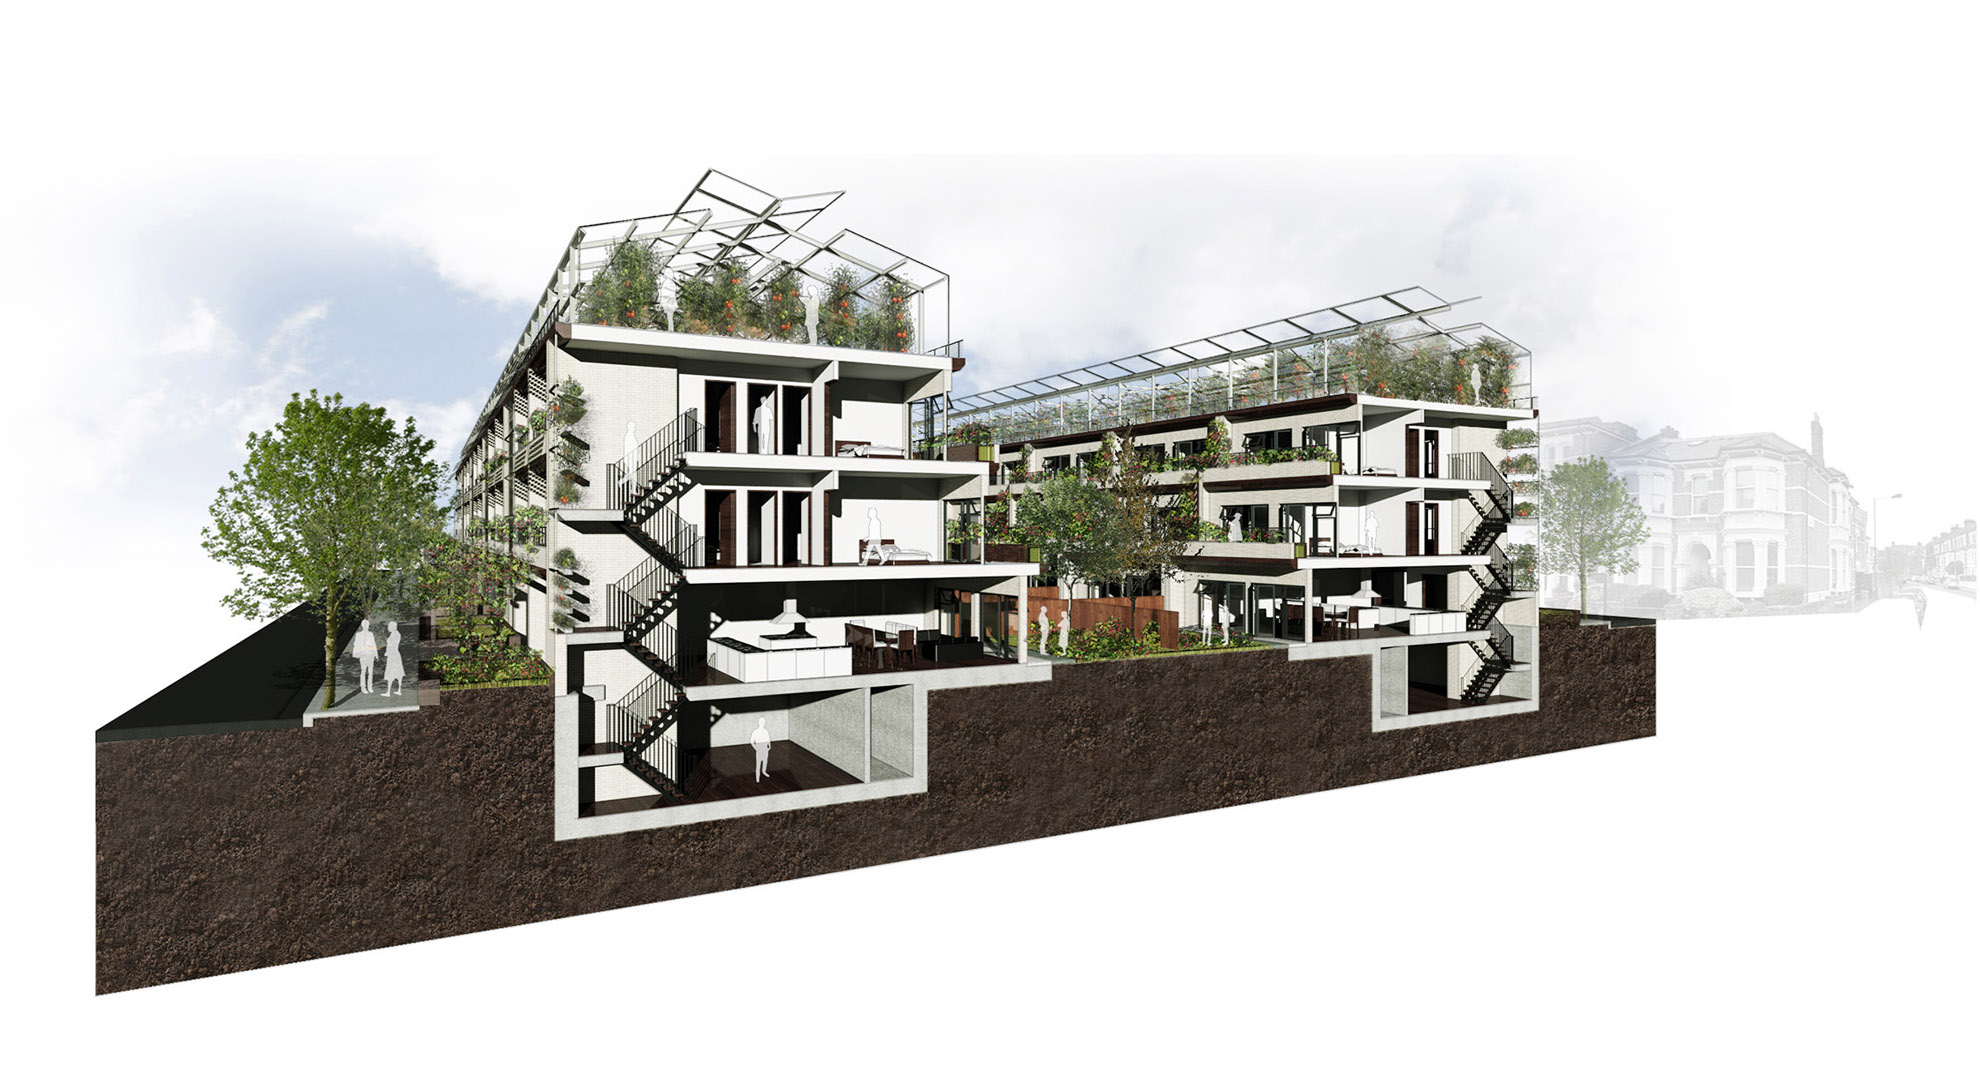 Terrace housing could be an opportunity for urban agriculture.